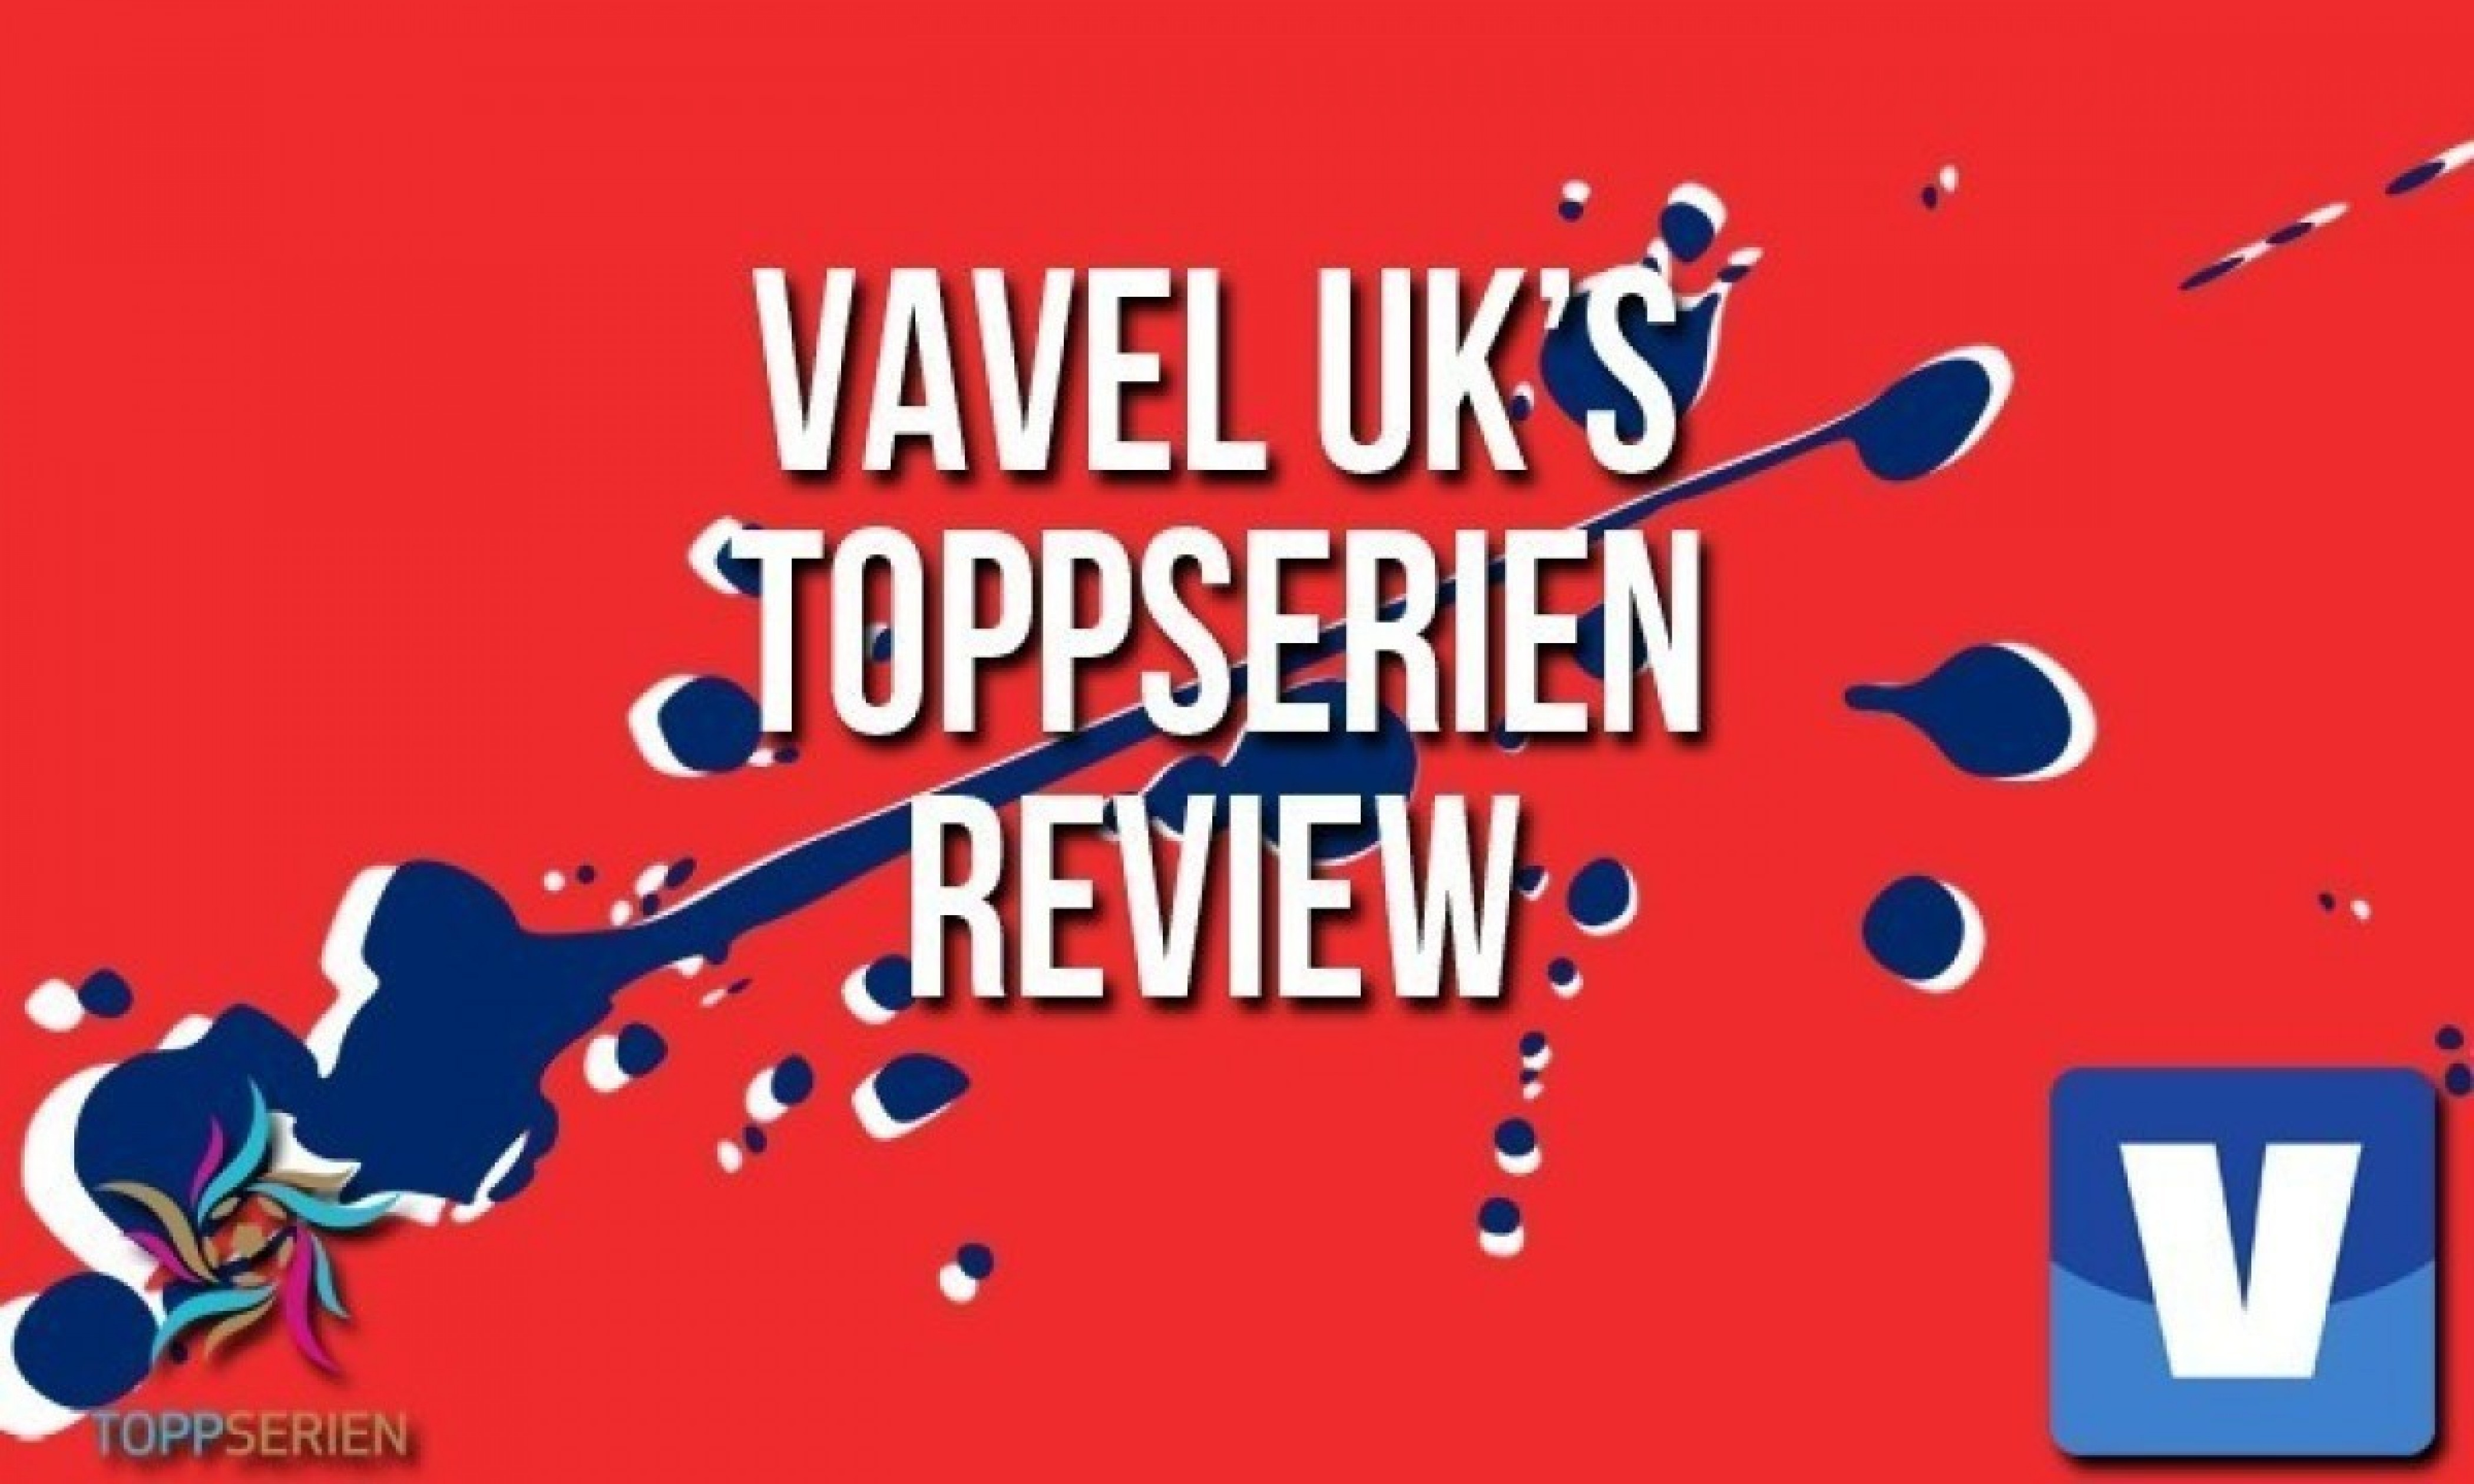 Toppserien week 19 review: Bergen derby ends in a stalemate